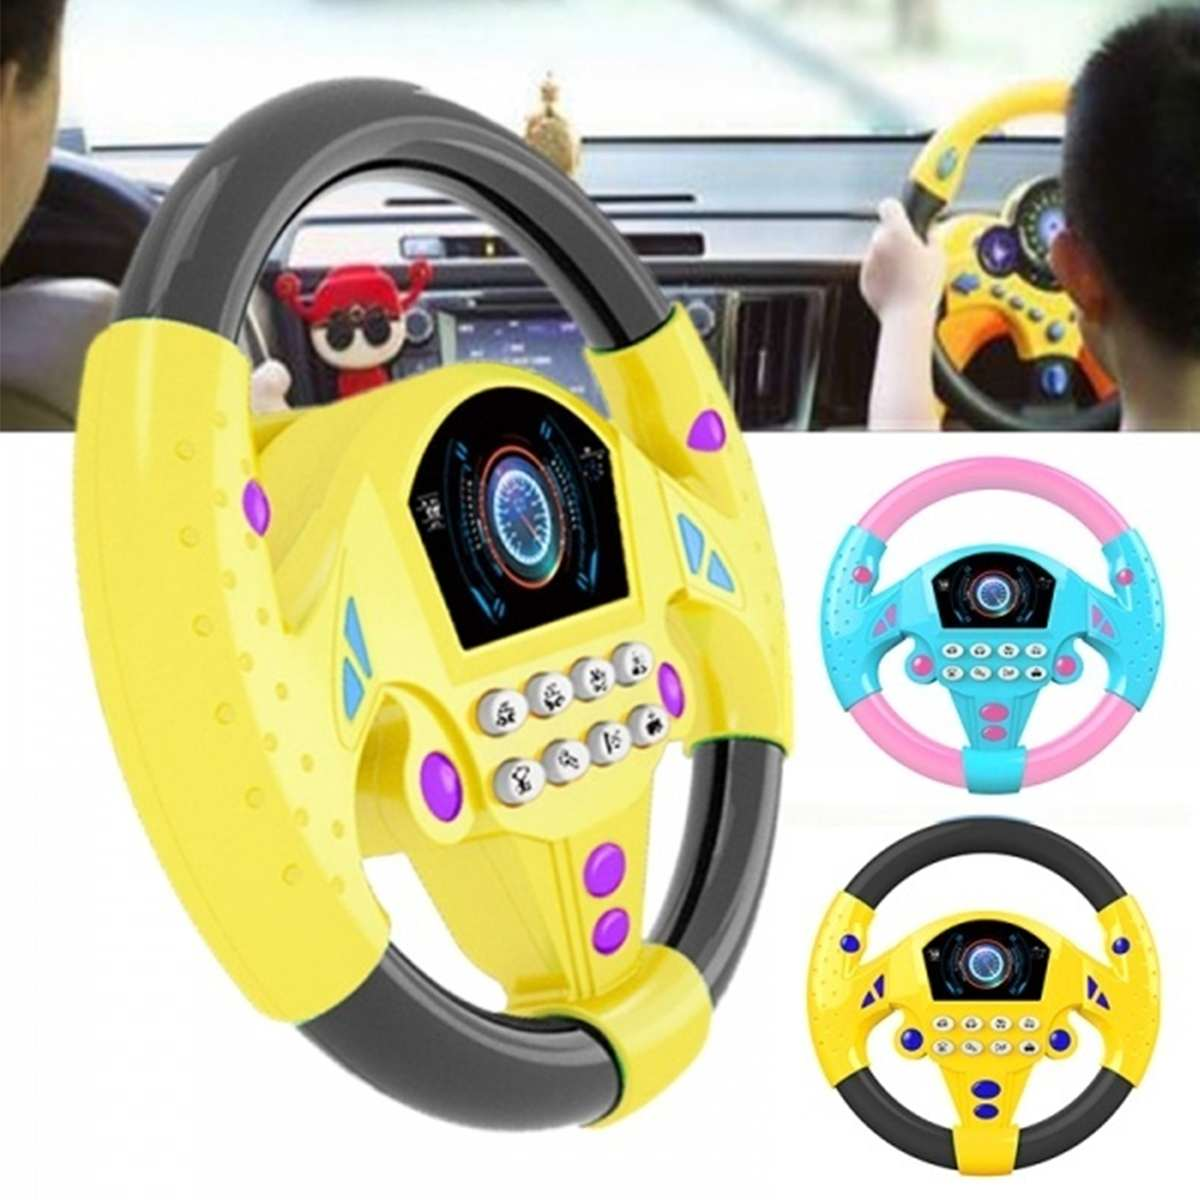 Educational Toy Children's Gift Copilots Steering Wheel Kid Driver Baby Steering Wheel Toddler Musical Toys With Lights Sounds